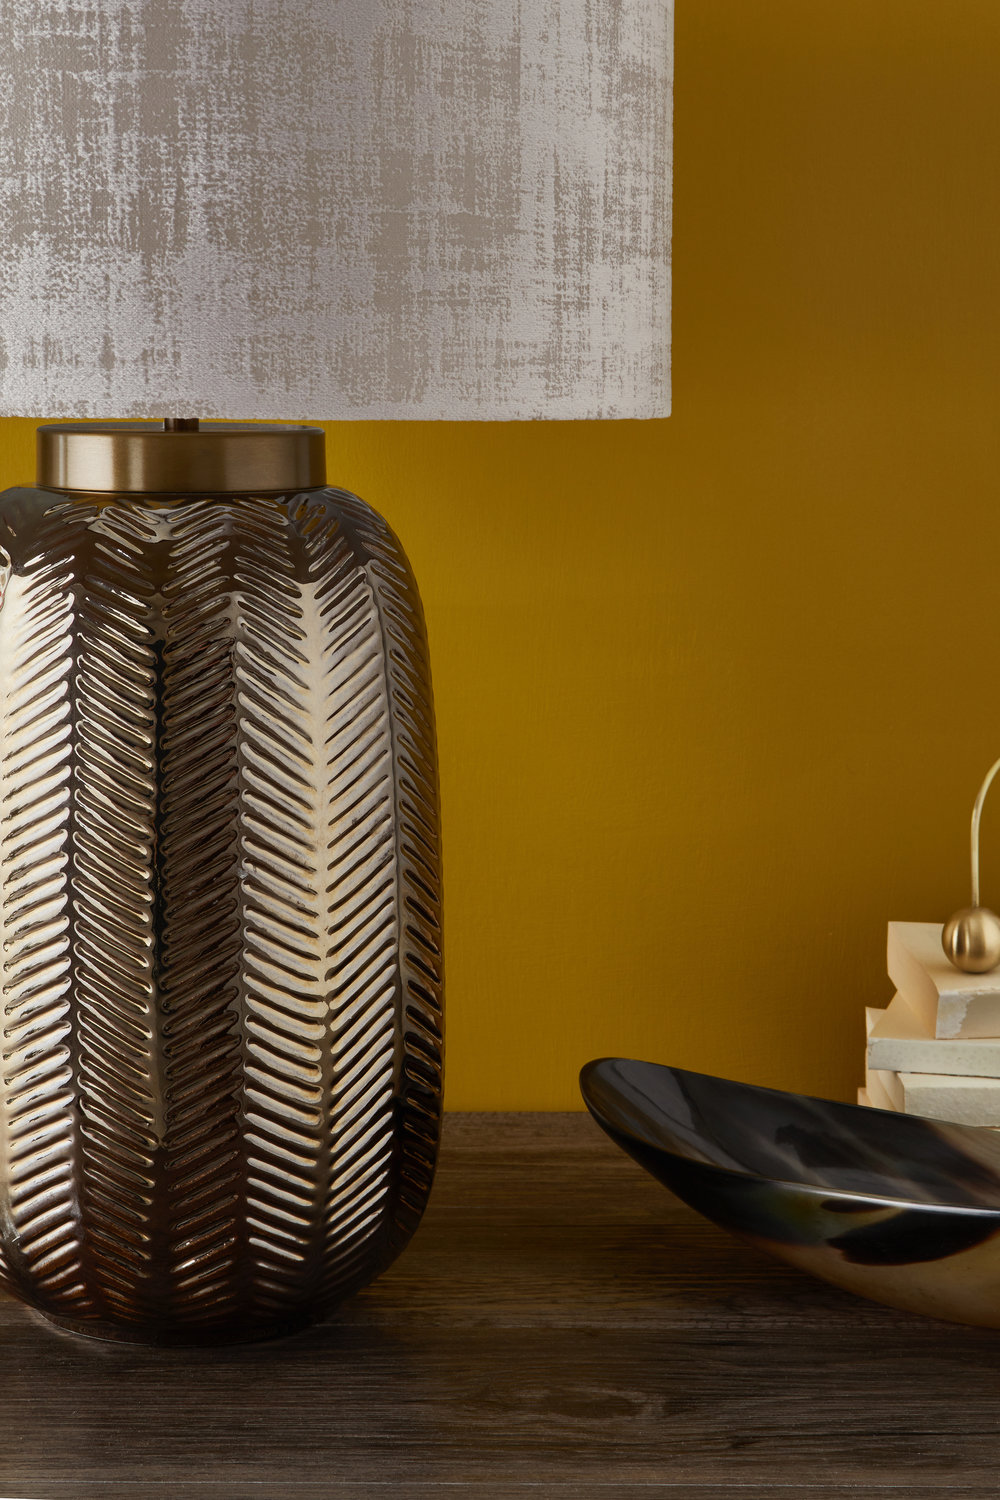 Mood_Shot_Fern_Bronze_Table_Lamp_2667x4000_01.jpg